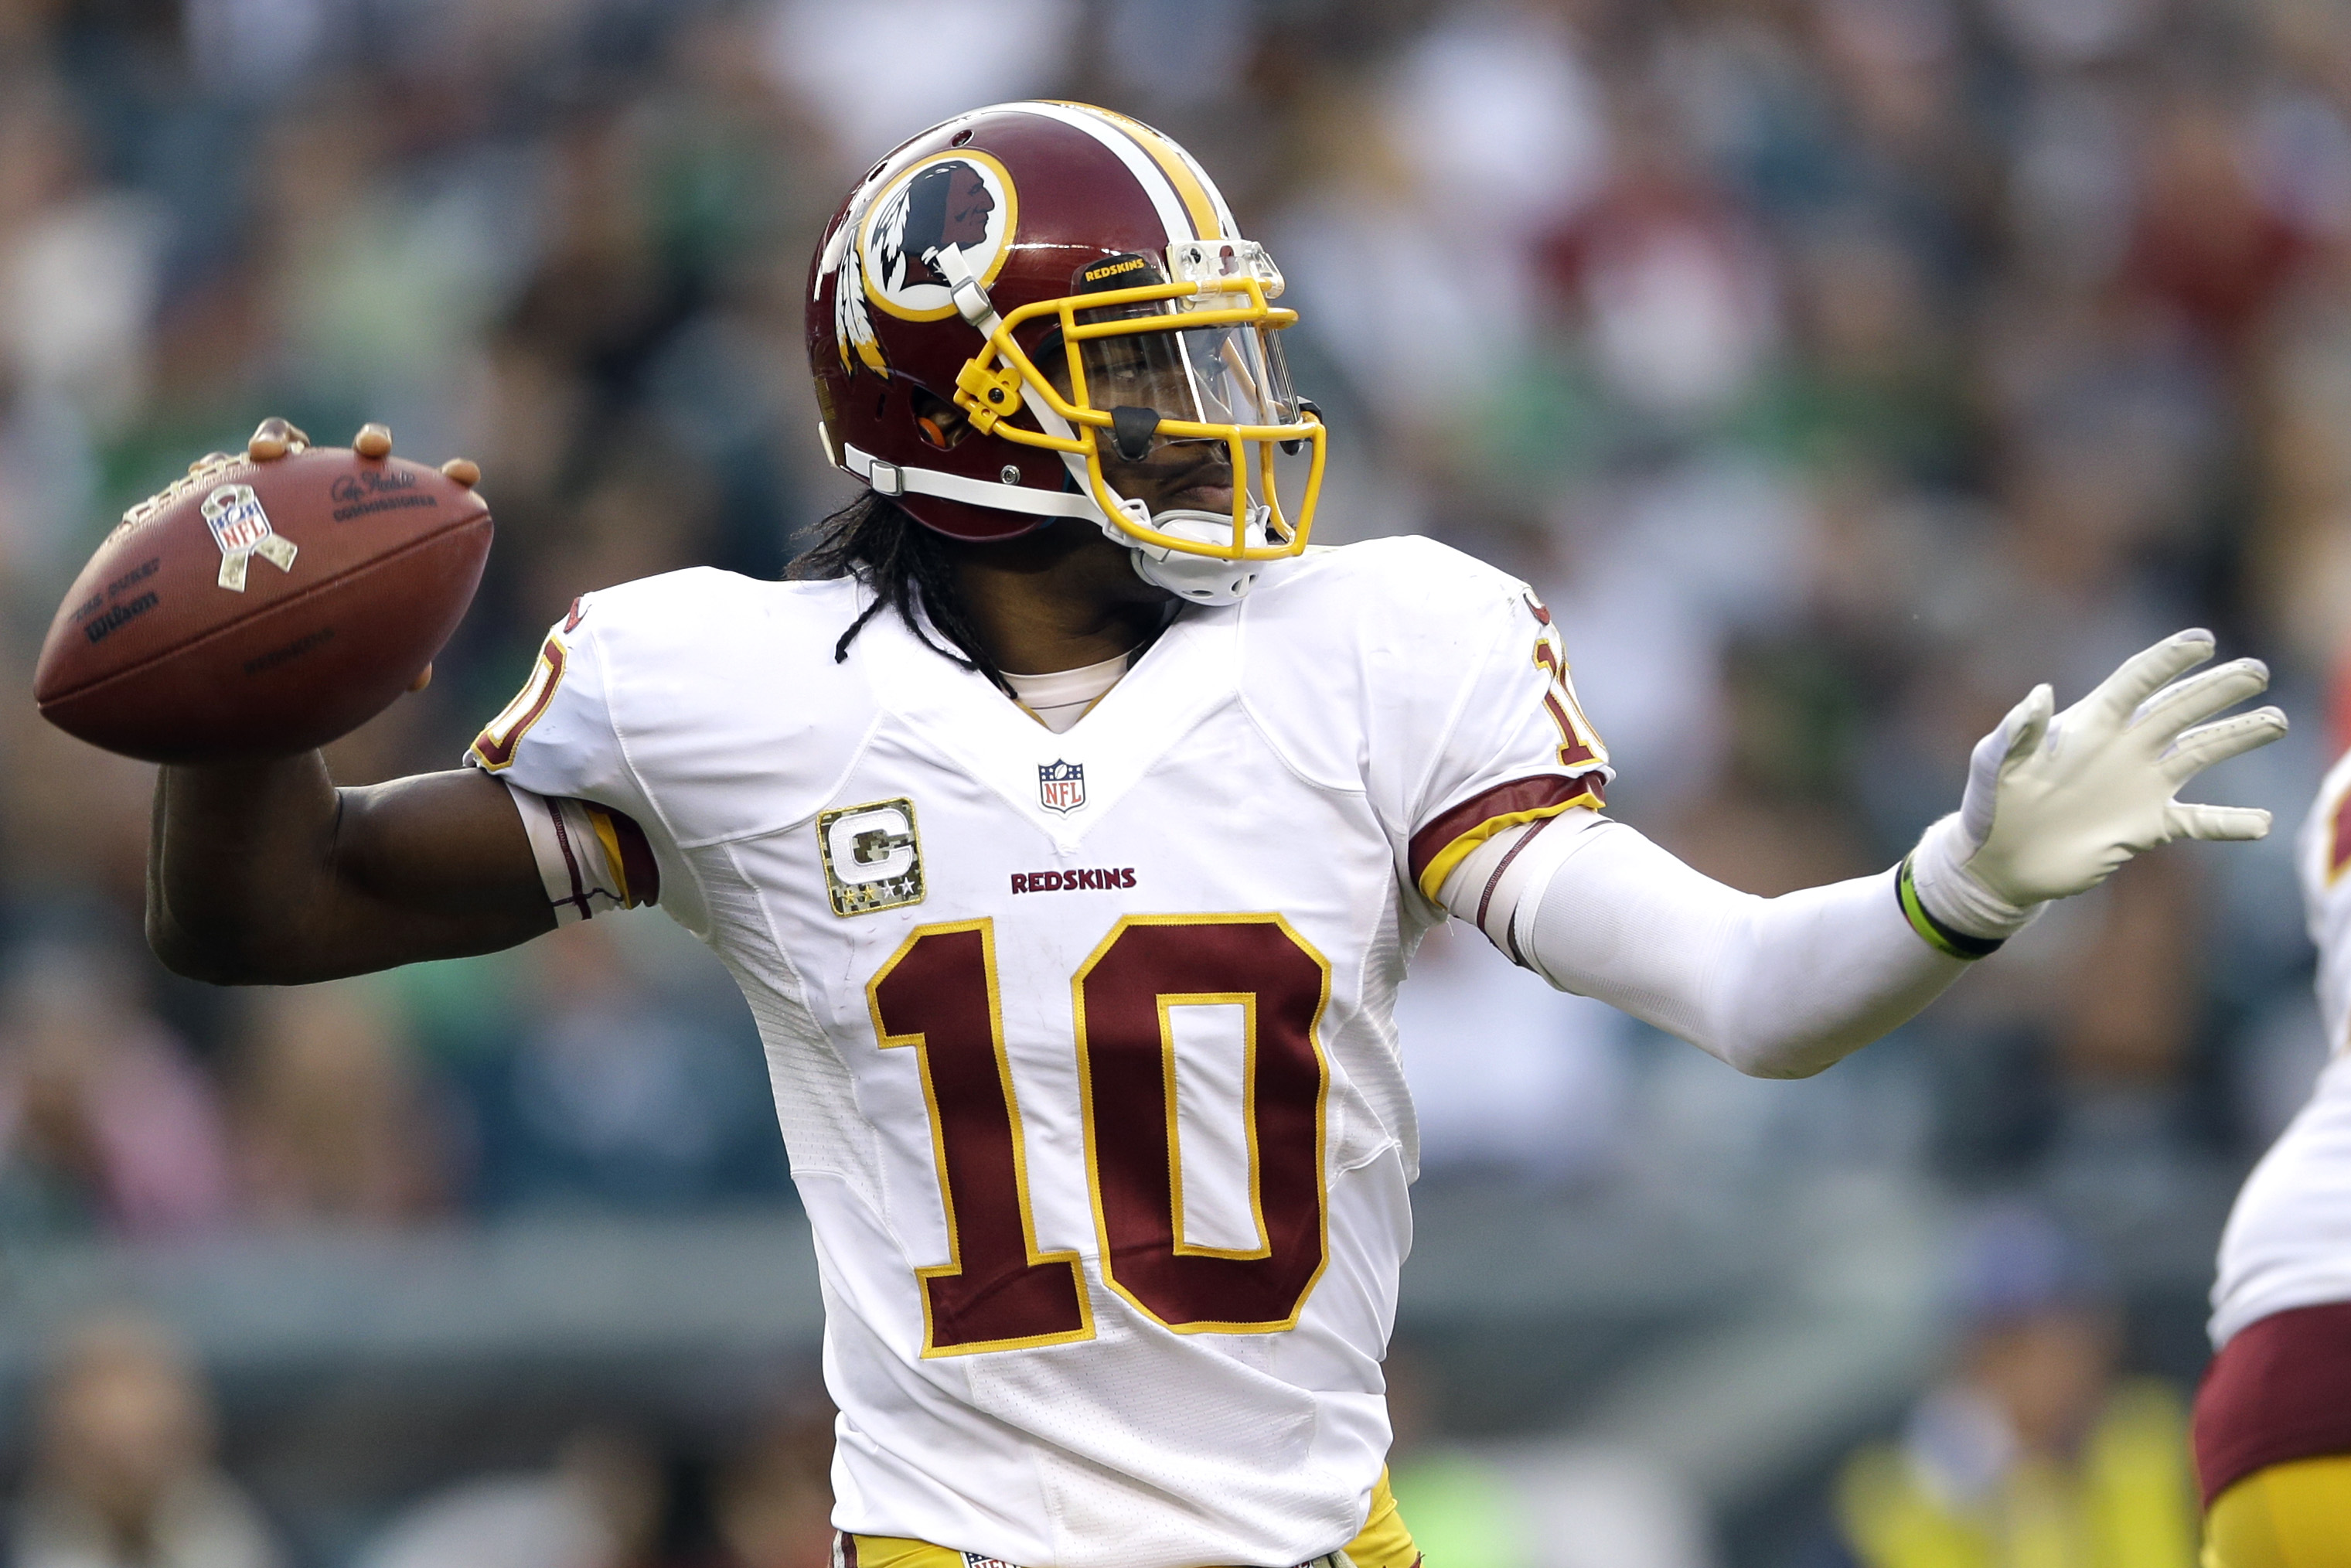 RG III And The Redskins Part Ways